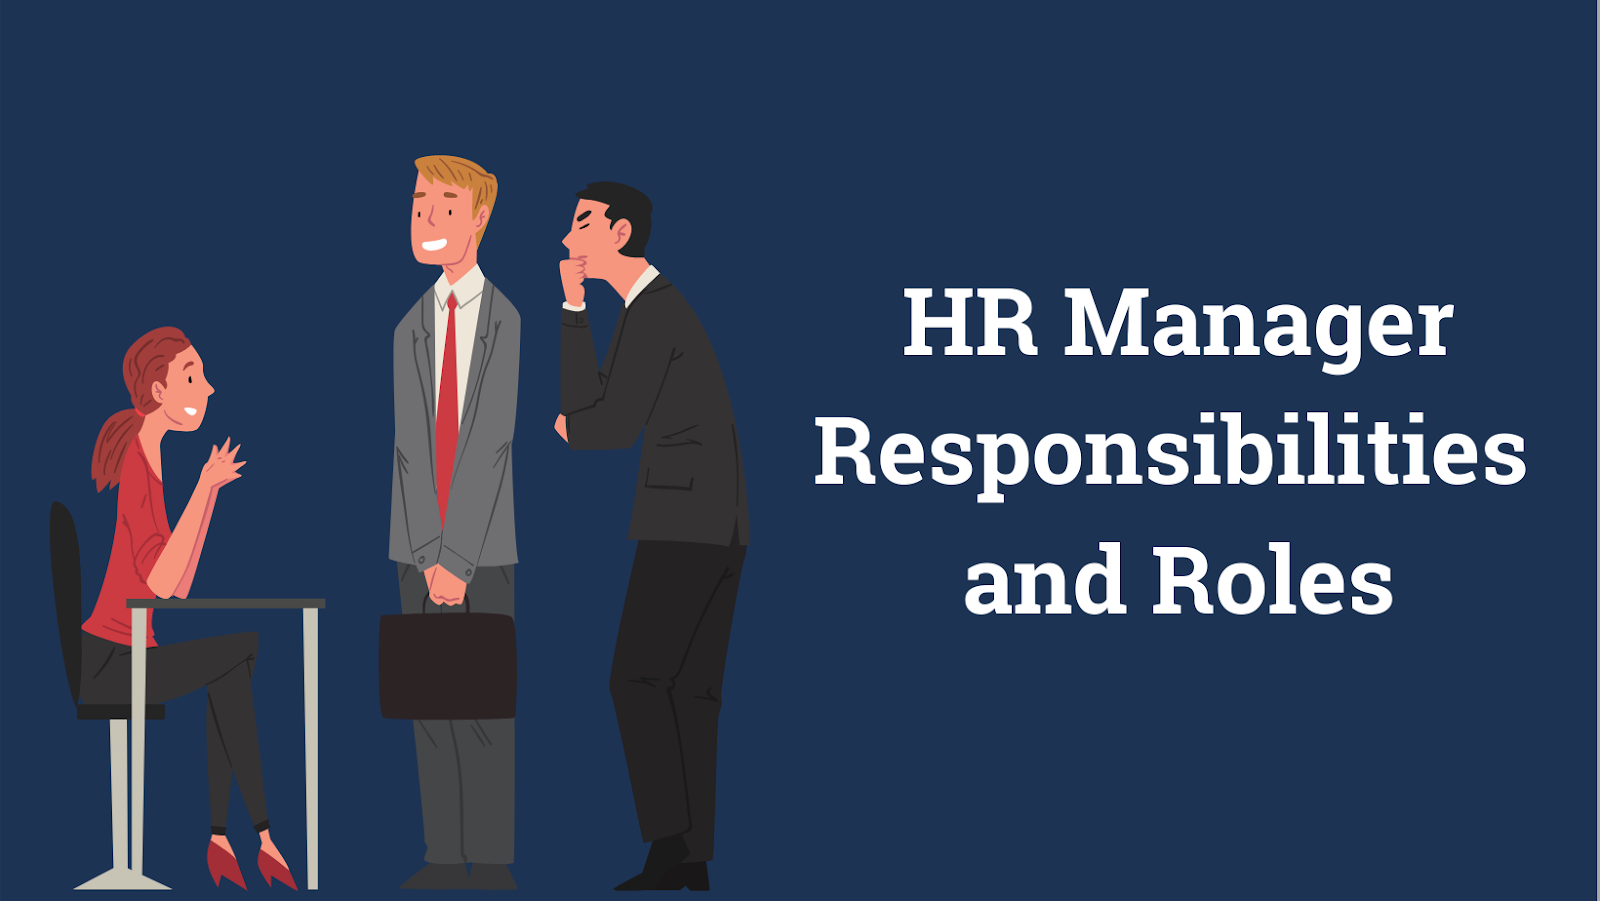 HR Manager Roles & Responsibilities